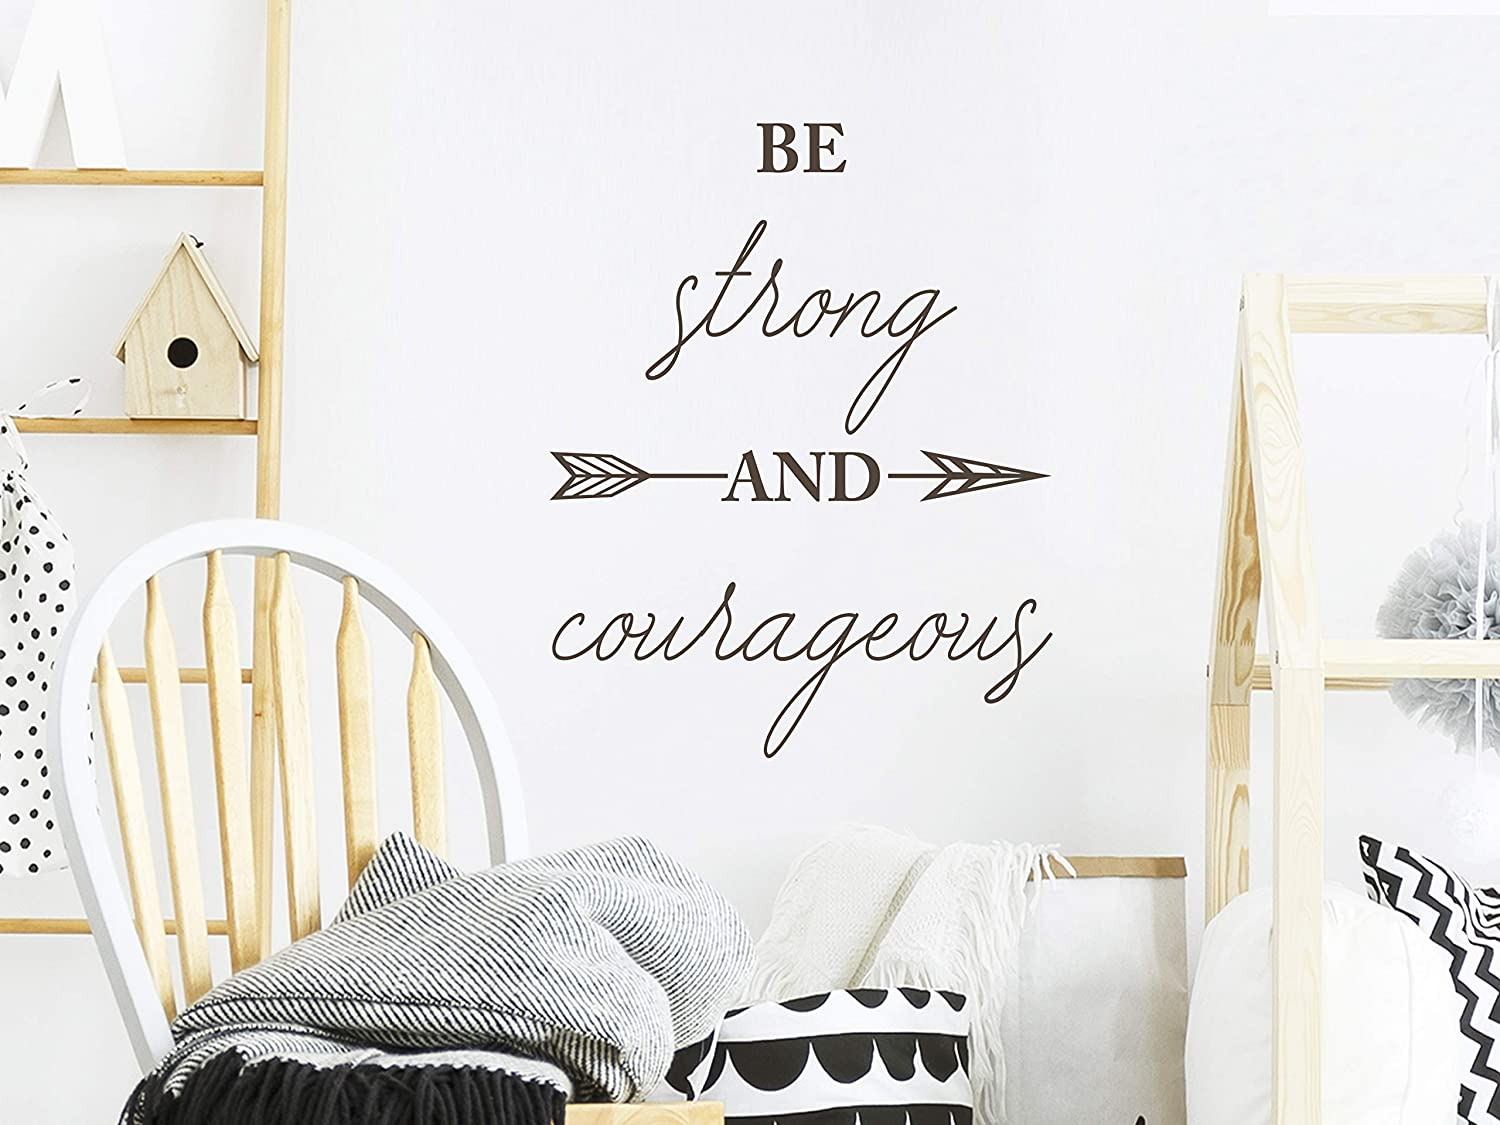 Amazon Com Story Of Home Llc Be Strong And Courageous Wall Decal Joshua 1 9 Bible Verse Religious Scripture Vinyl Kitchen